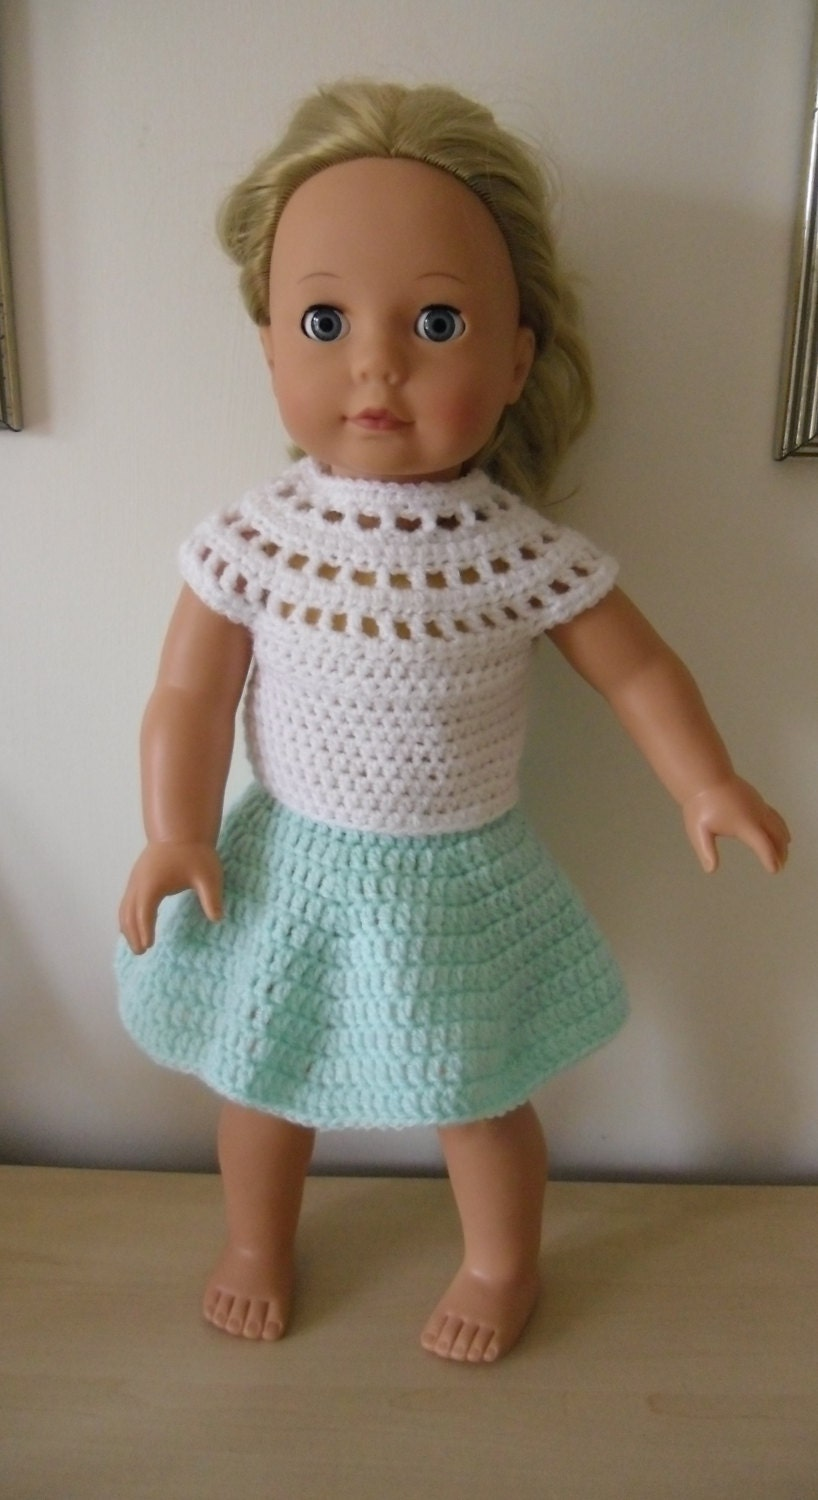 Baby Turtle Amigurumi Pattern : Crochet pattern for skirt and top for 18 inch doll